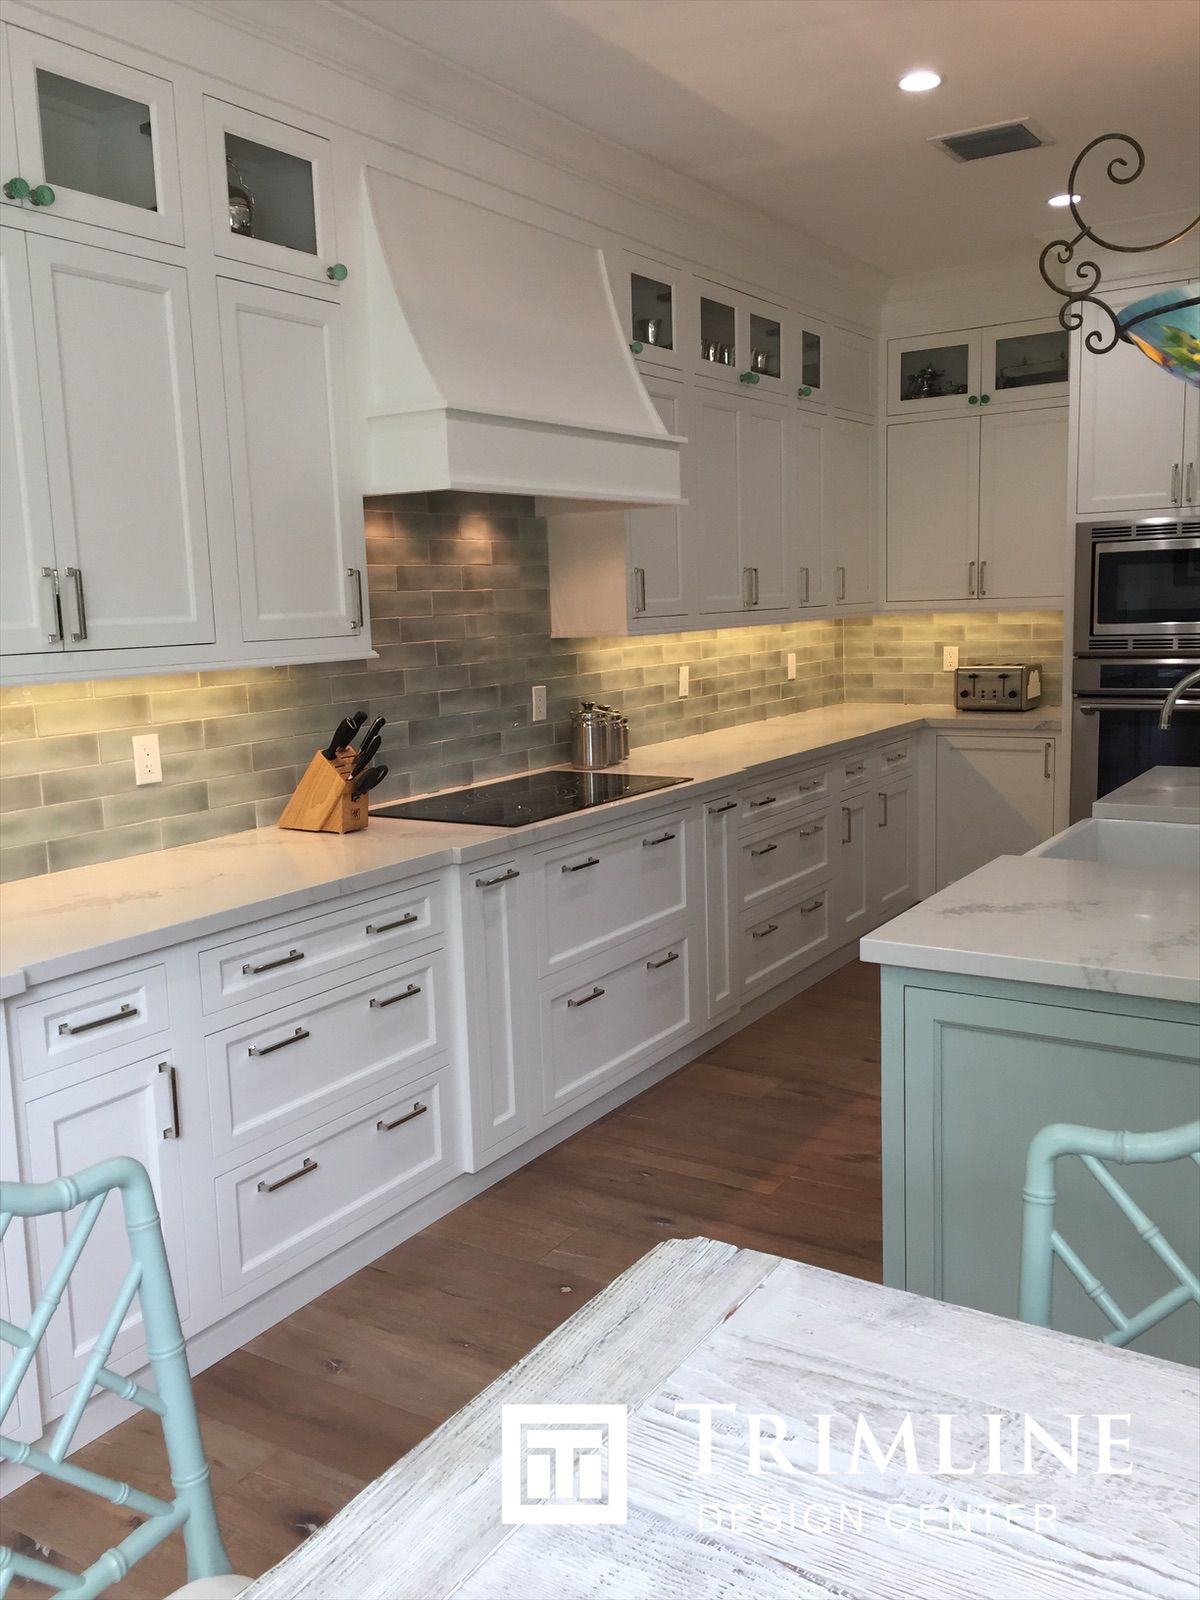 White Painted Cabinets Surrounded By A Celery Green Island Paint Cabinets White Painting Cabinets White Kitchen